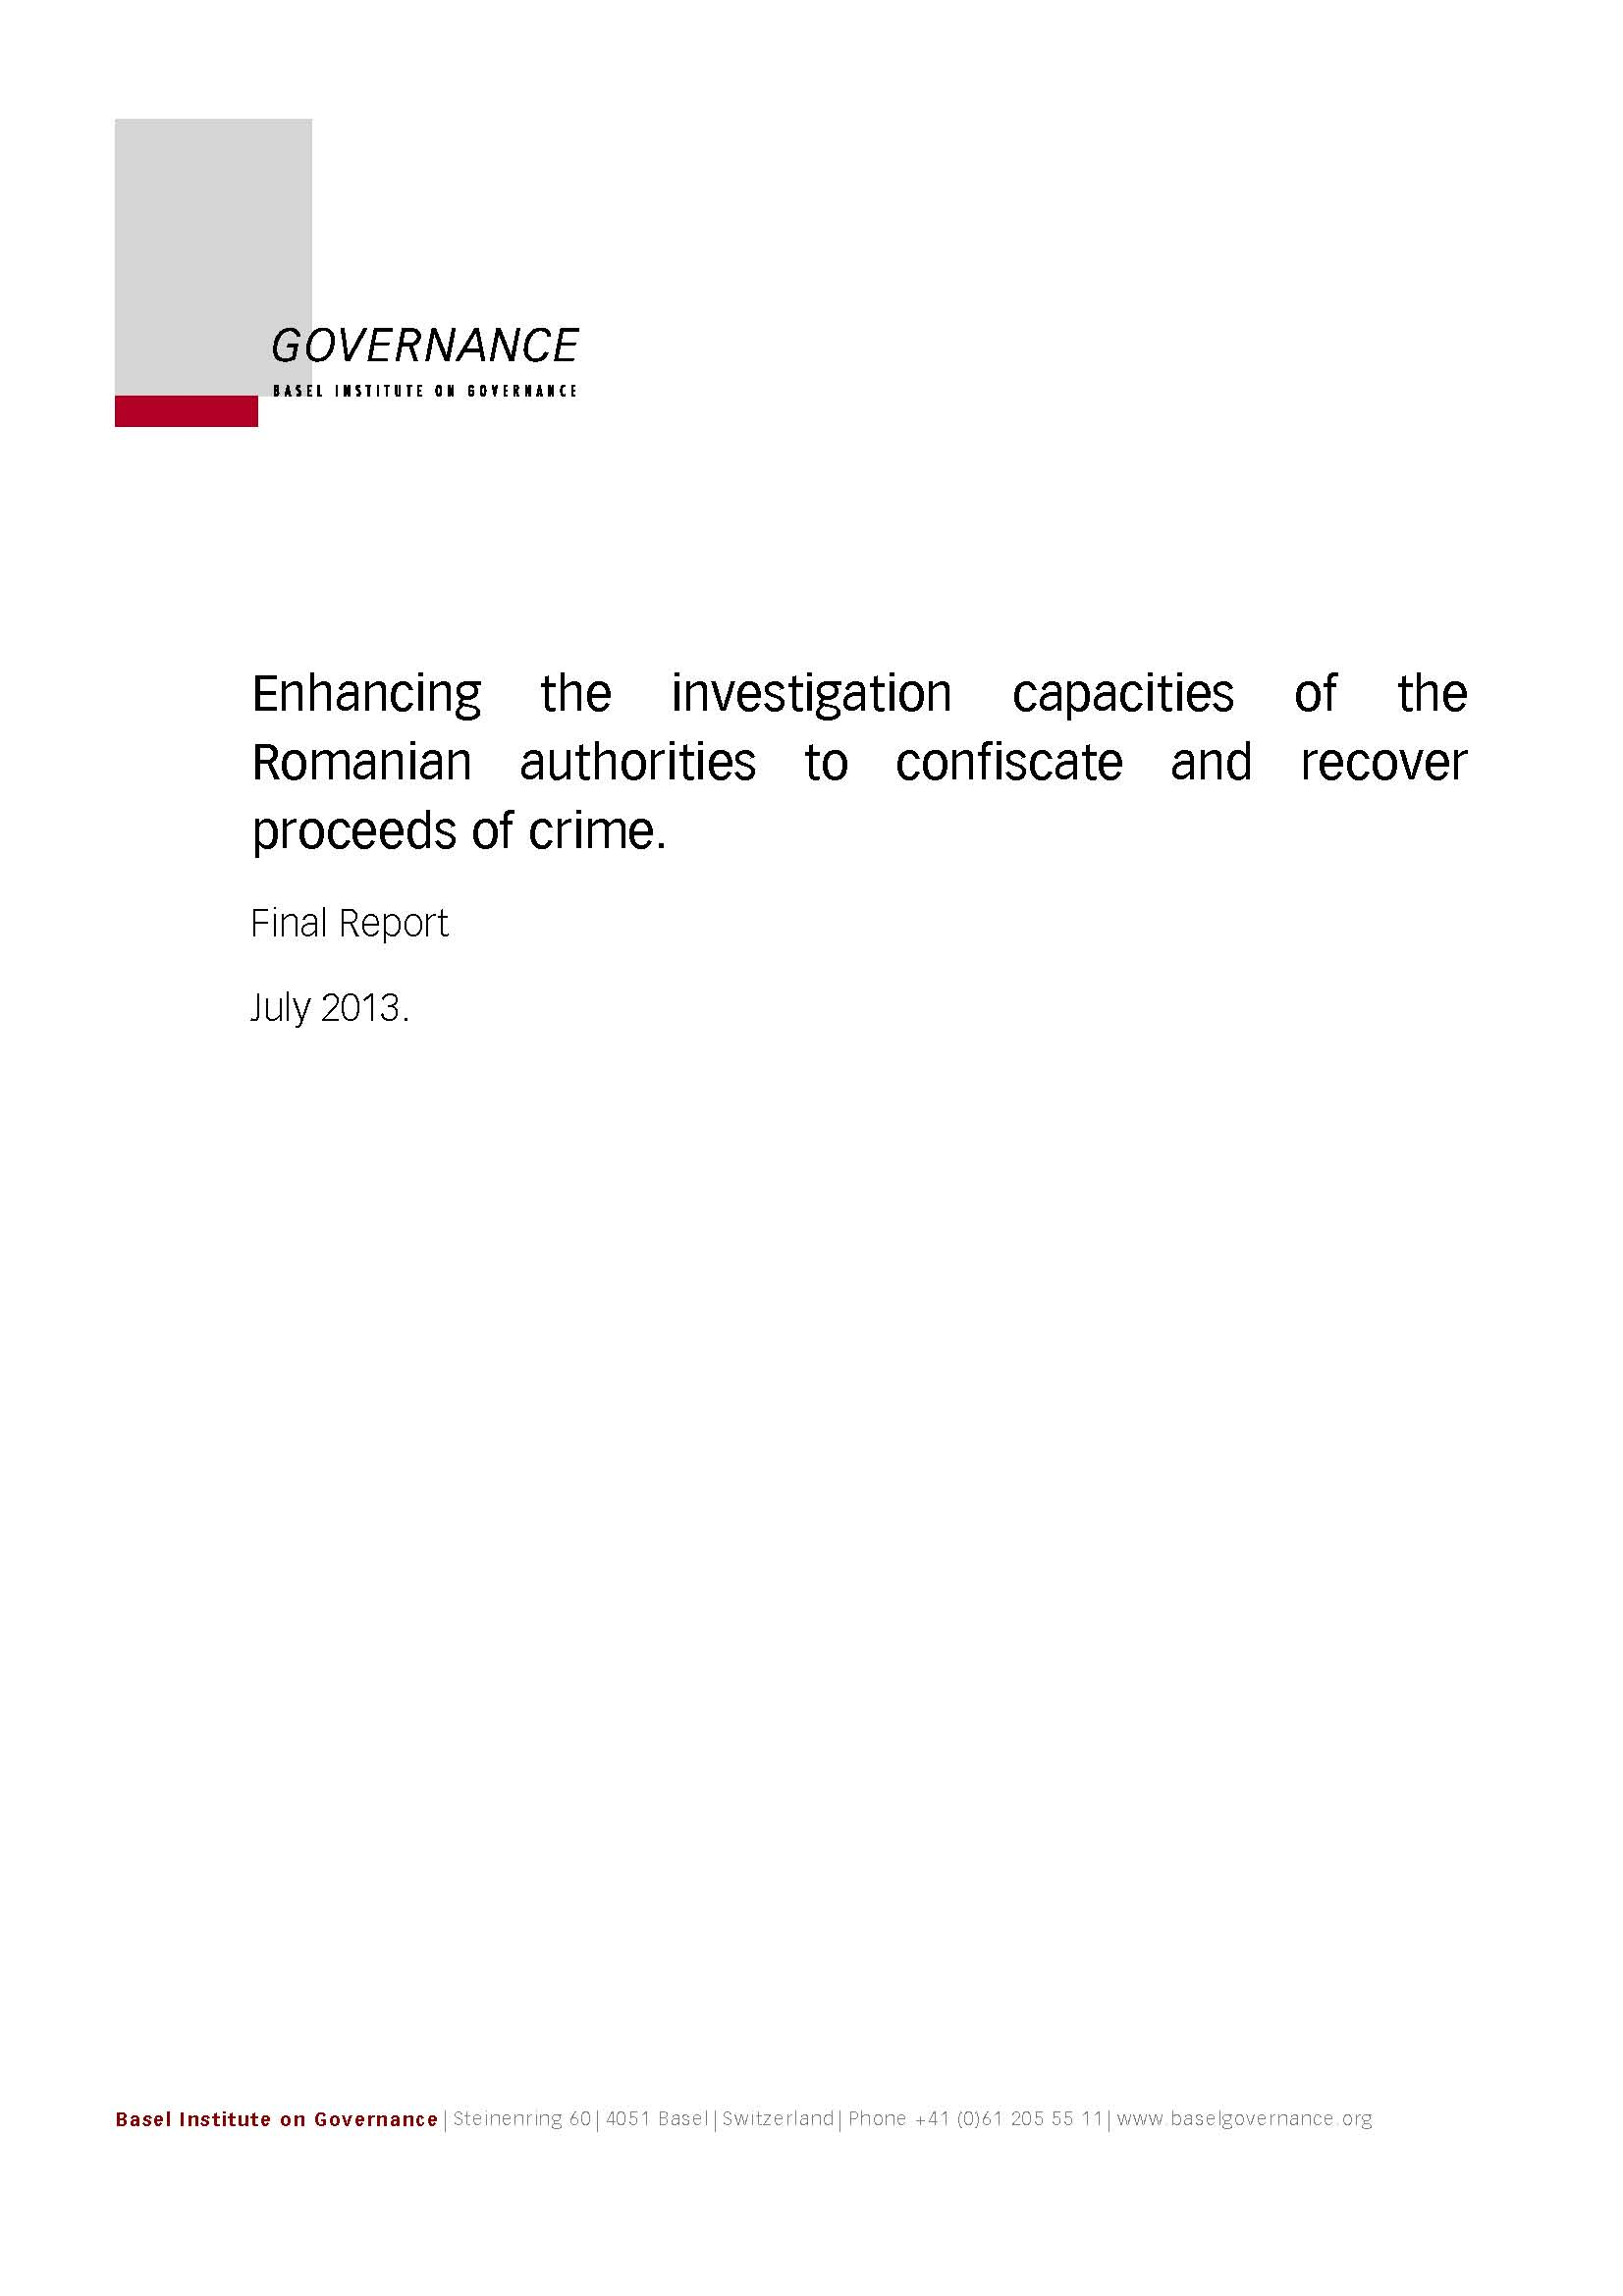 Cover page of Enhancing the Investigation Capacities of the Romanian Authorities report